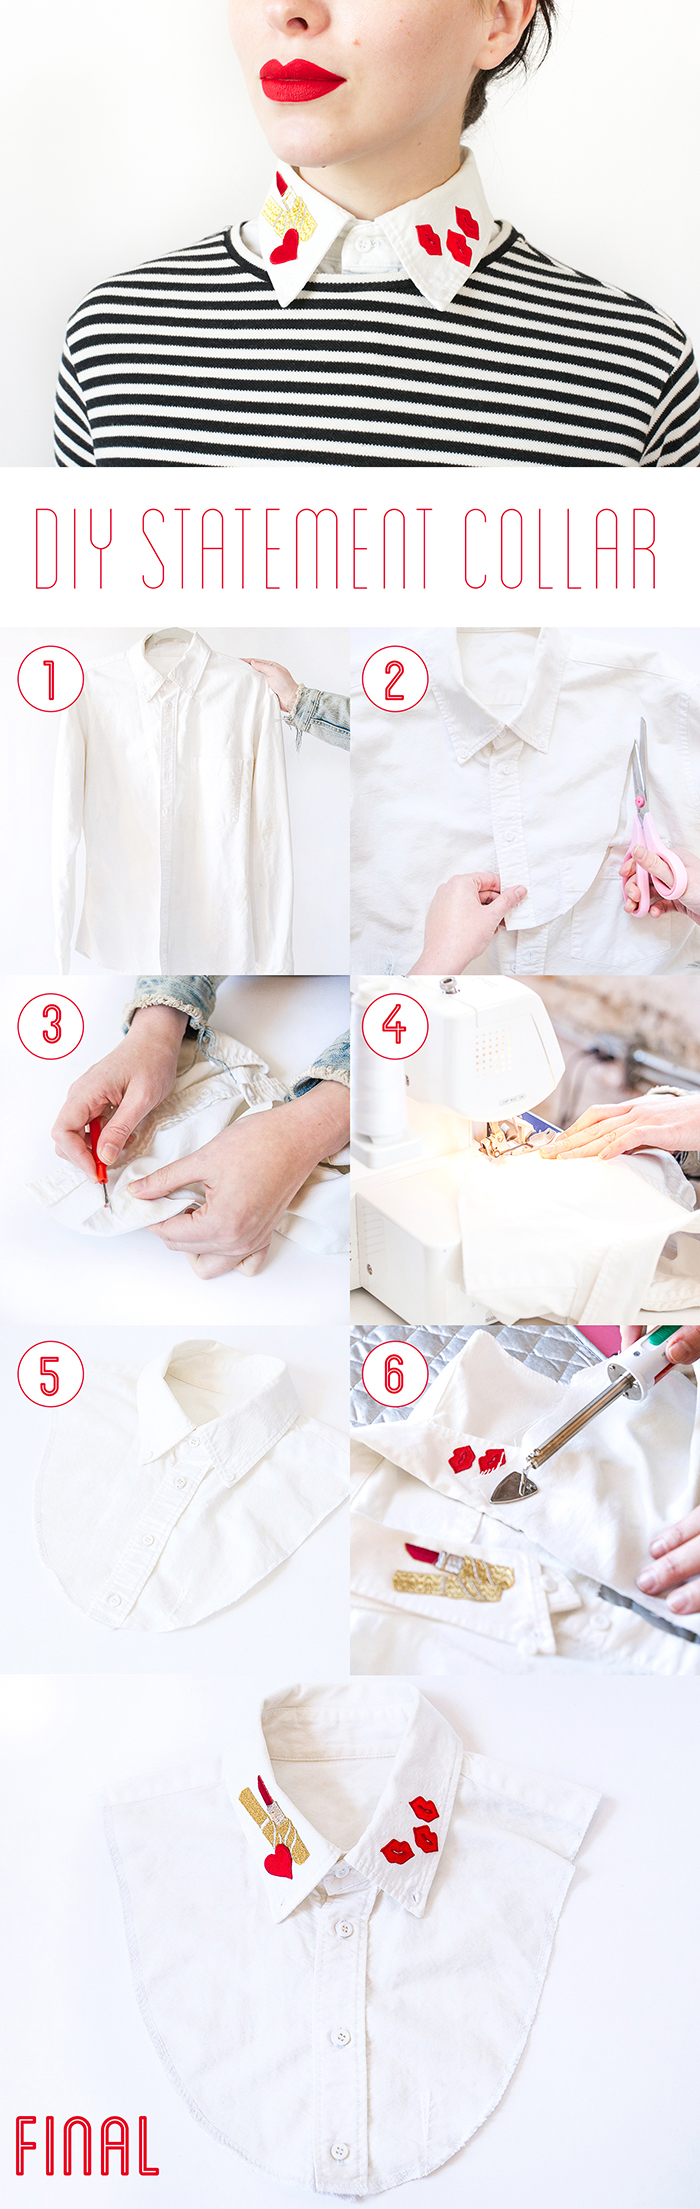 diy statement collar tutorial